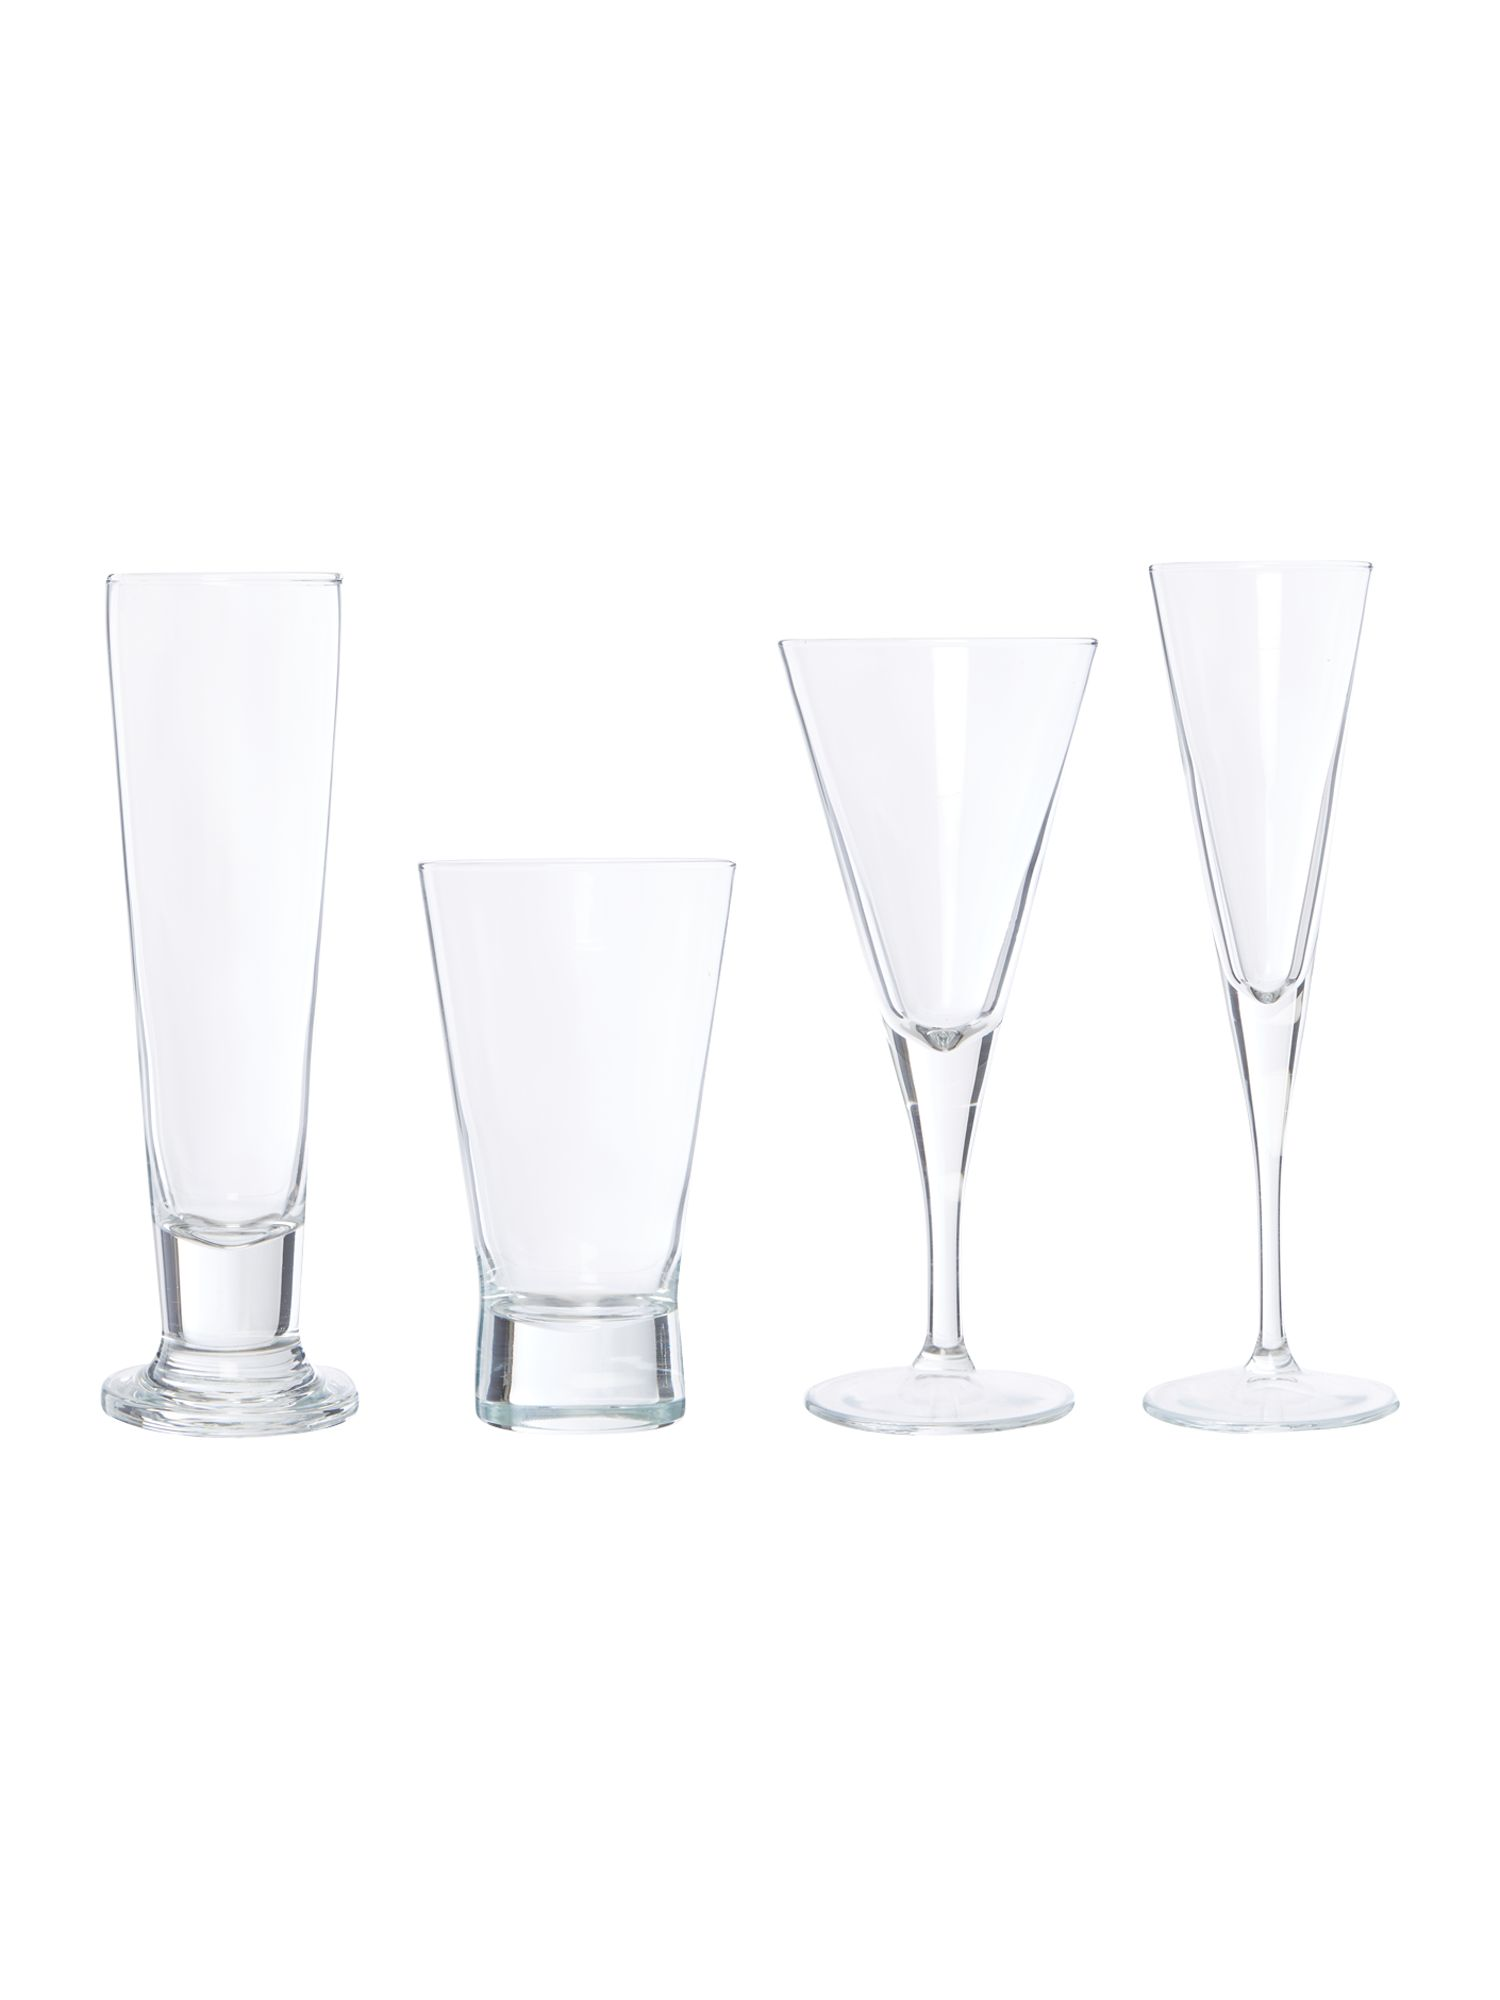 Vertigo Statement Glassware